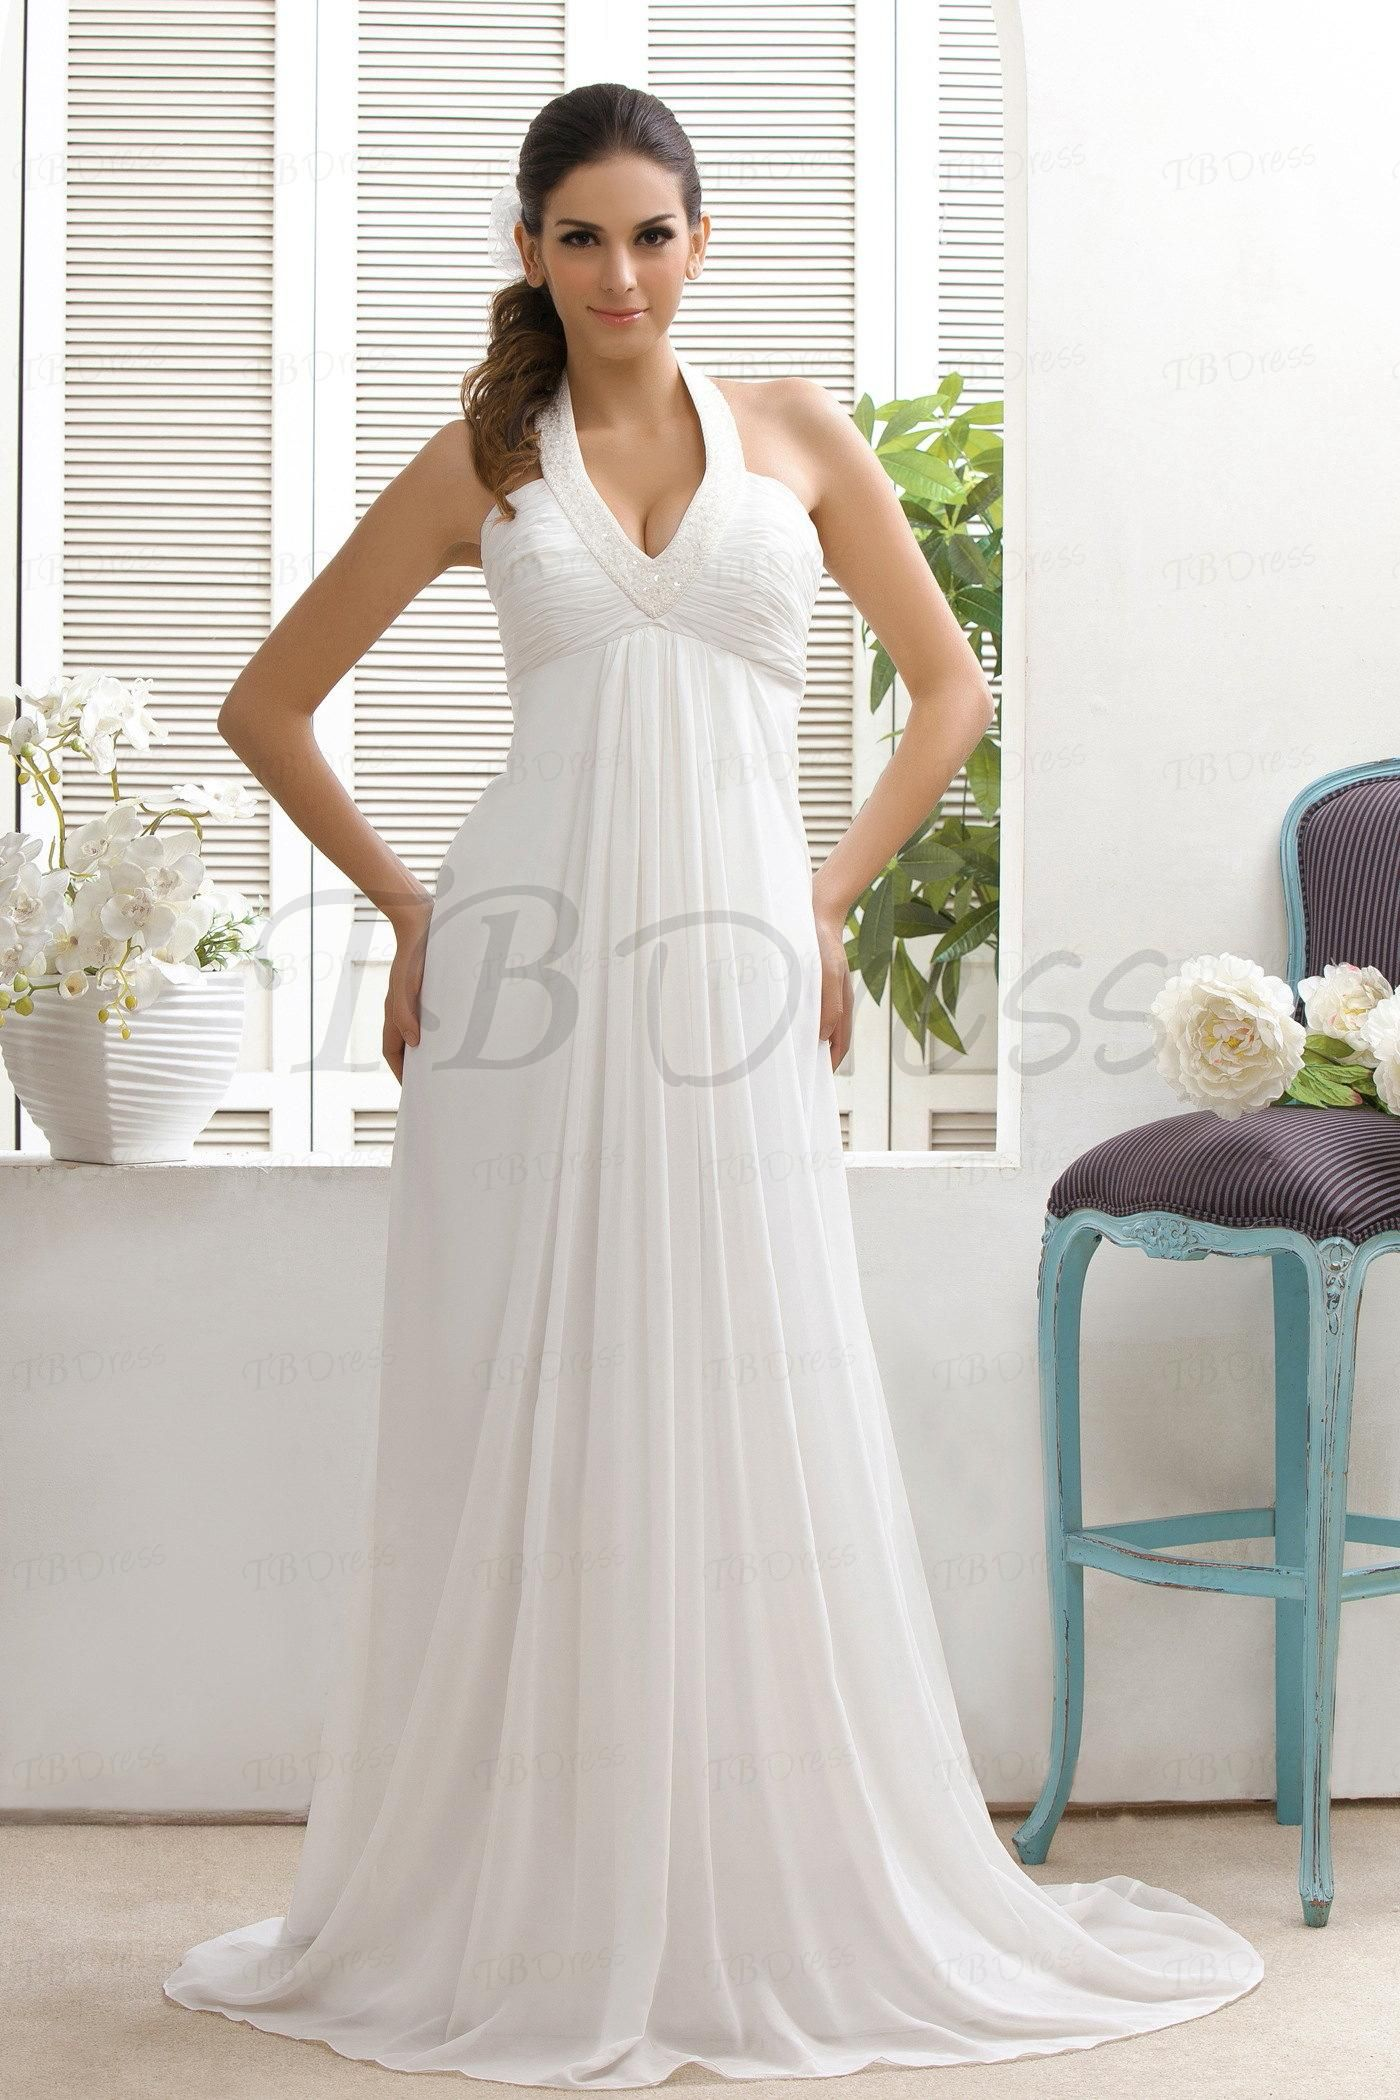 No waist style bridesmaid dresses plus size google search jenna no waist style bridesmaid dresses plus size google search ombrellifo Image collections